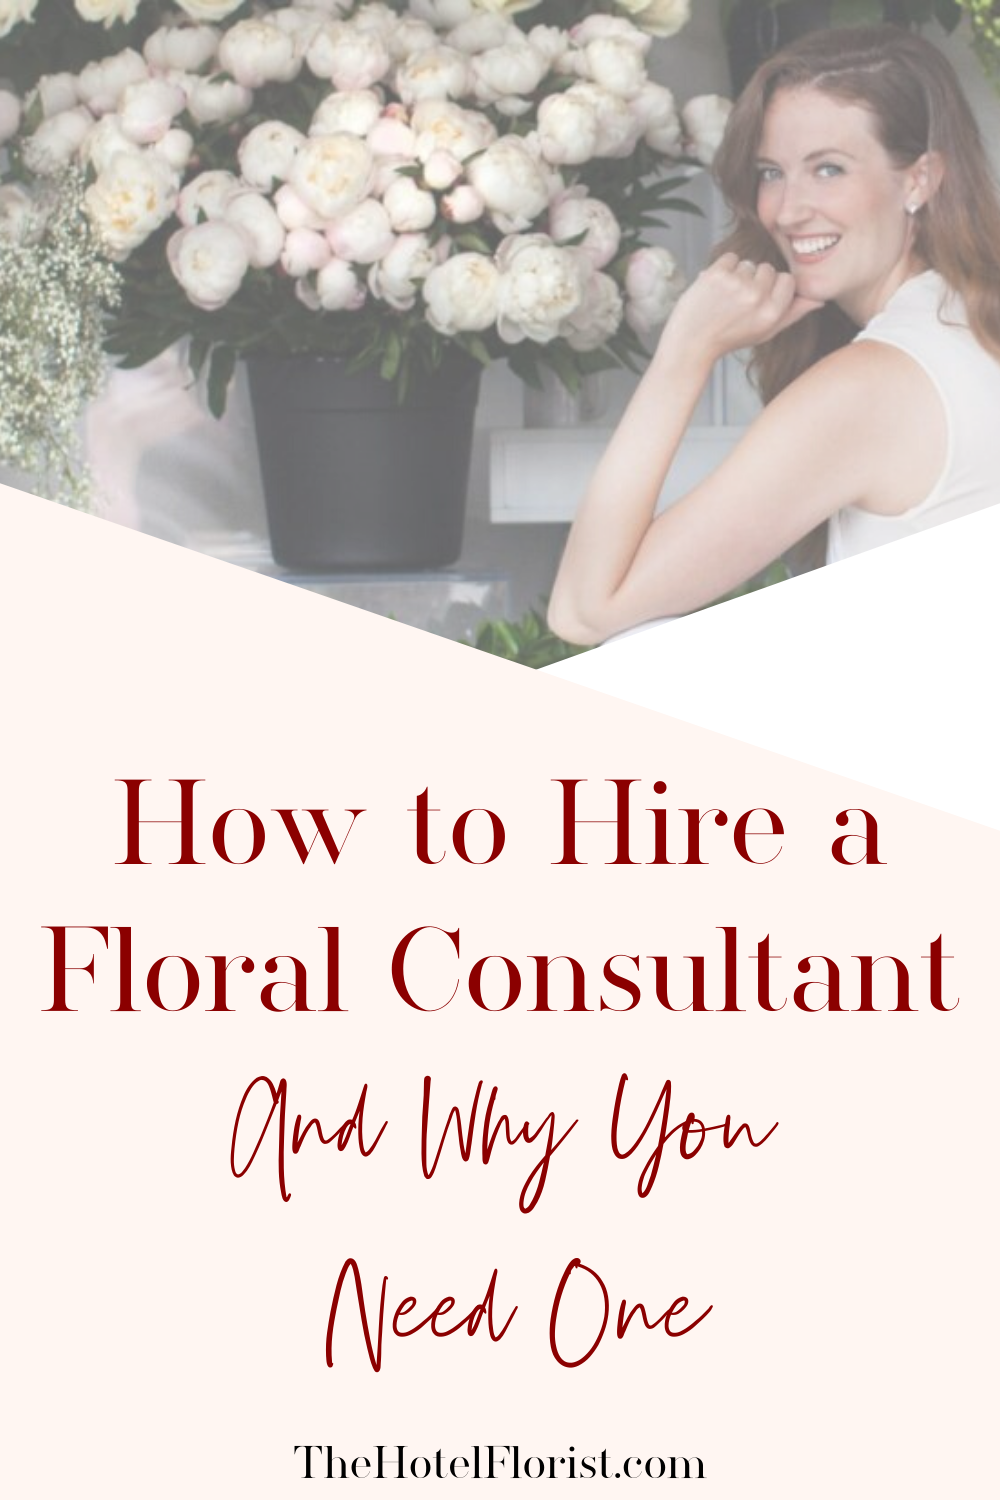 How To Hire A Floral Consultant In 2020 Floral Design Business Floral Hotel Branding